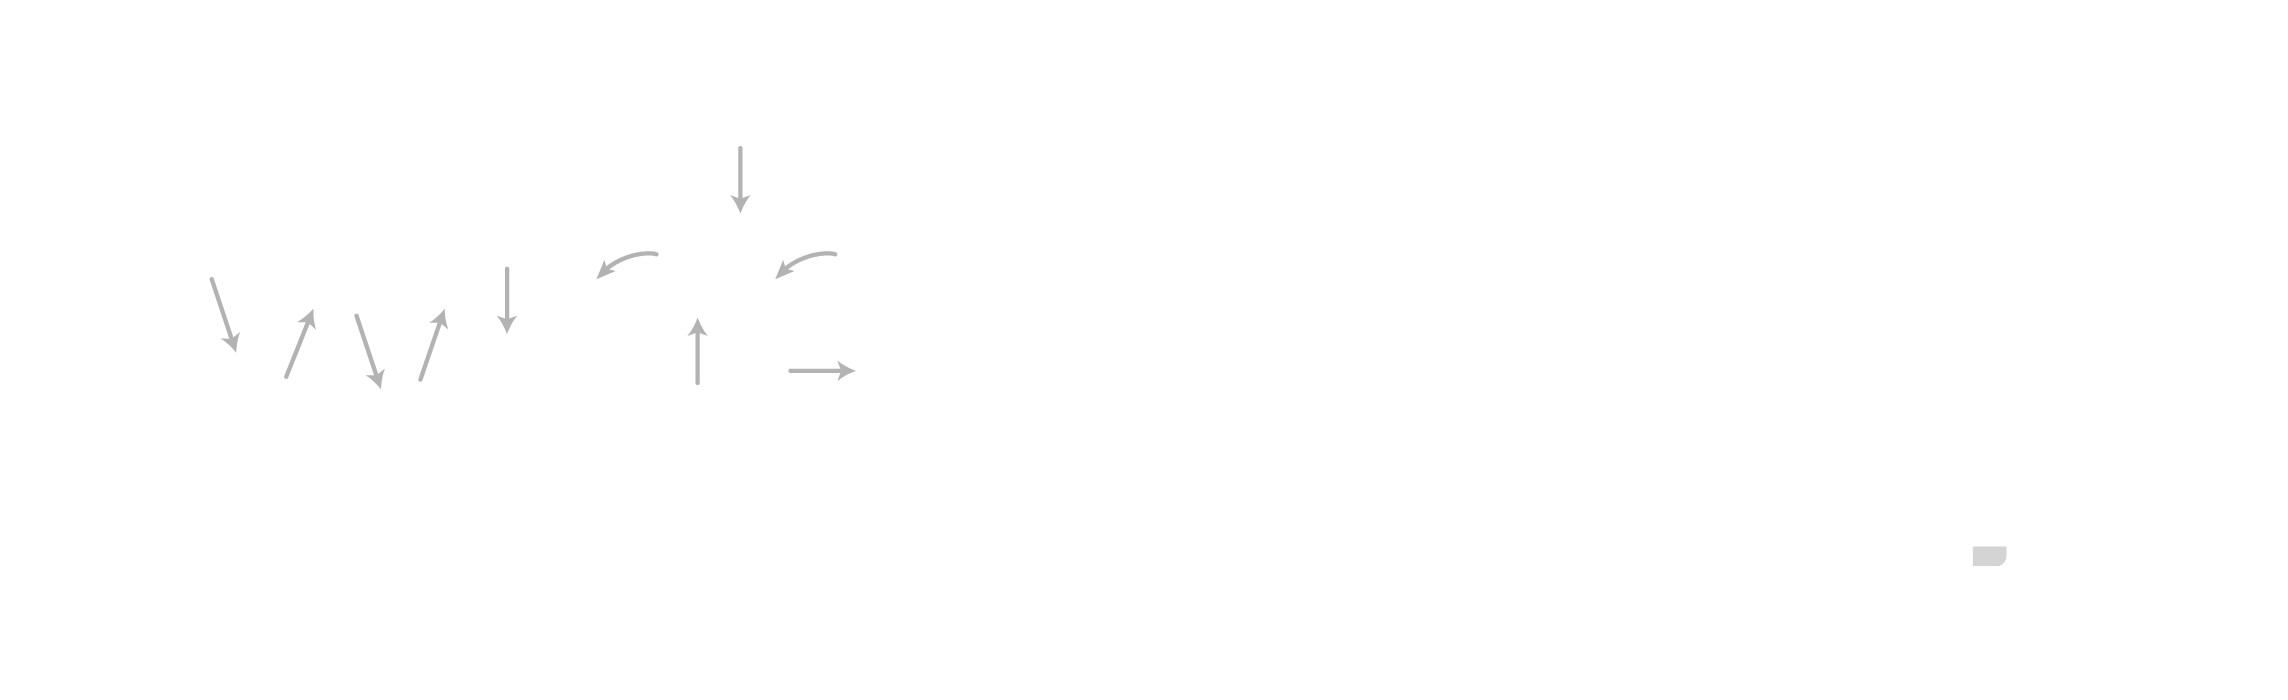 Wide Ruled - Brainroot's Podcast on the Past and Present of Equality in Education